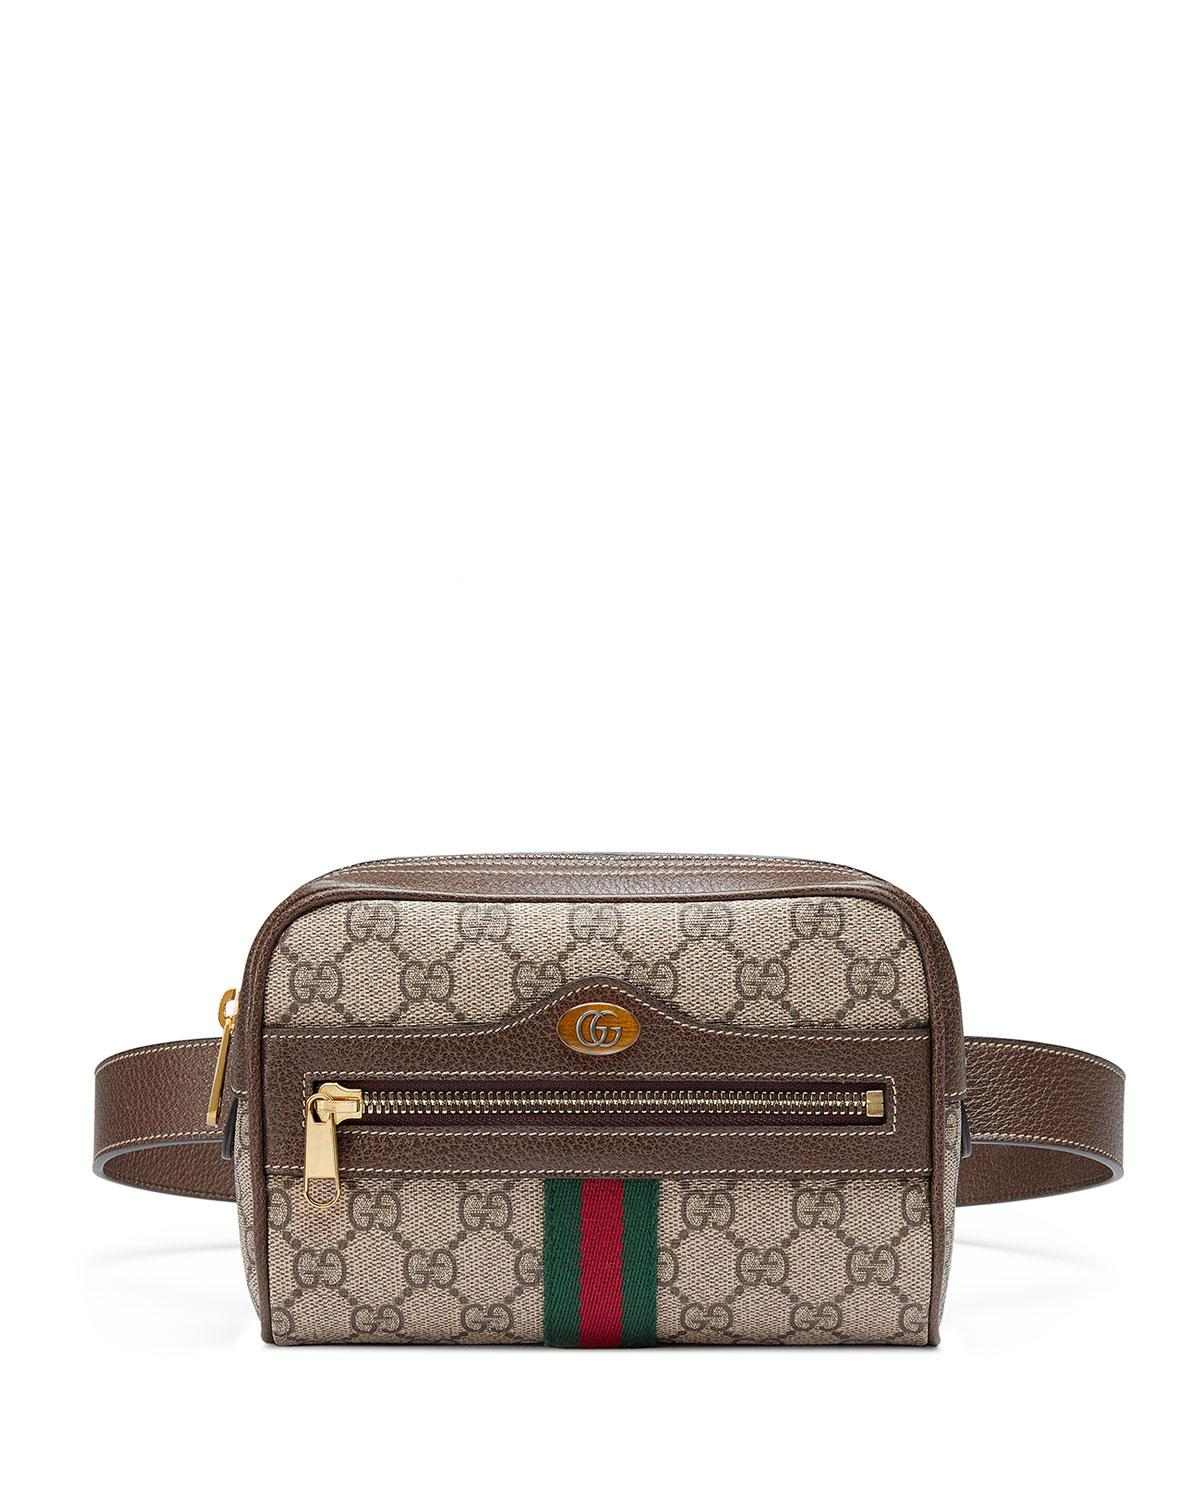 96361a2f4 Gucci Small Ophidia Gg Supreme Canvas Belt Bag in Natural - Lyst